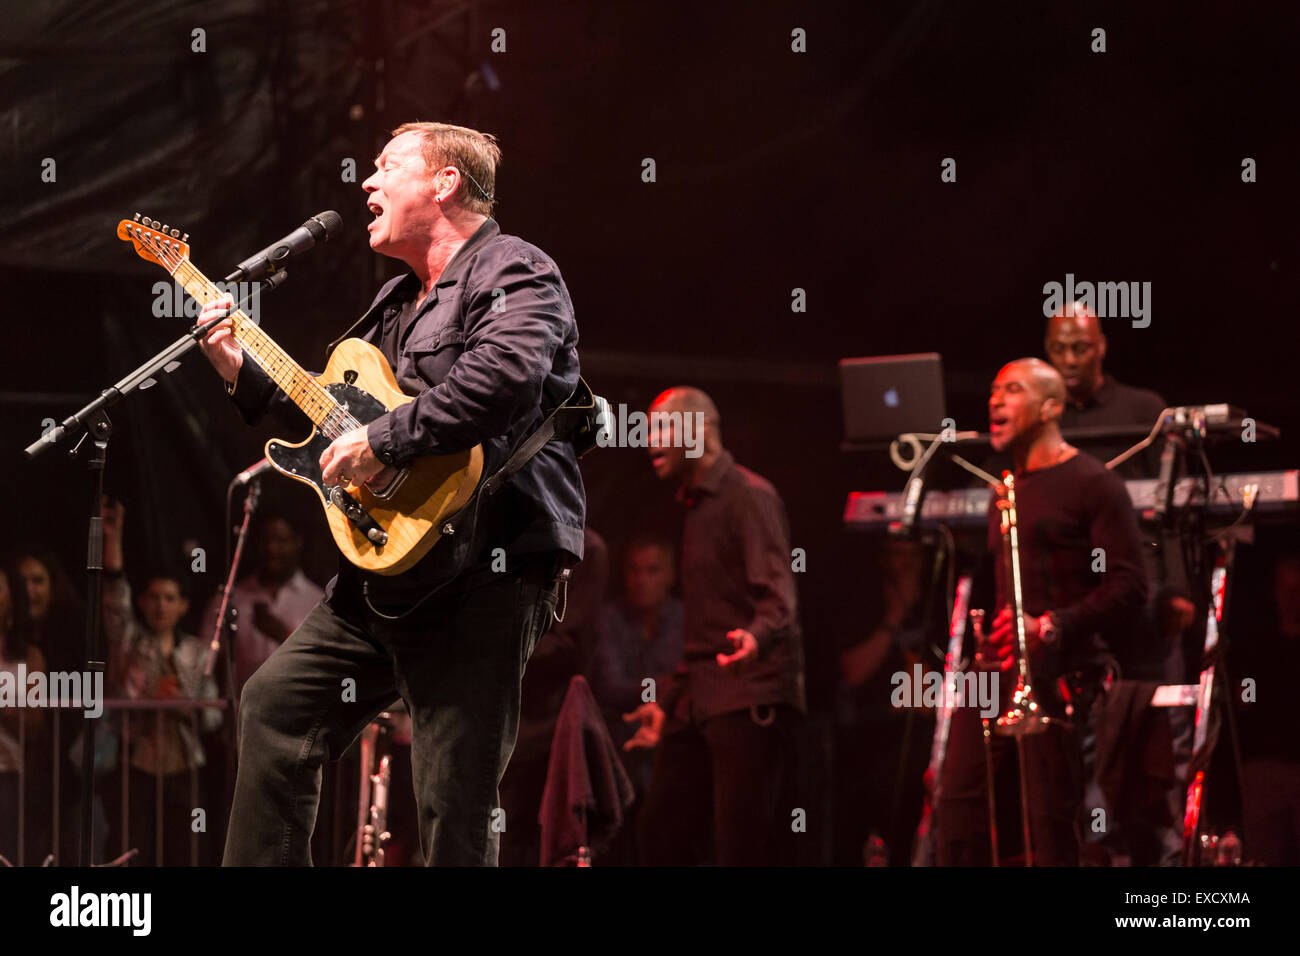 London, UK, 11th July 2015. UB40 Outdoor Concert, Kew Gardens Credit:  Robert Stainforth/Alamy Live News Stock Photo